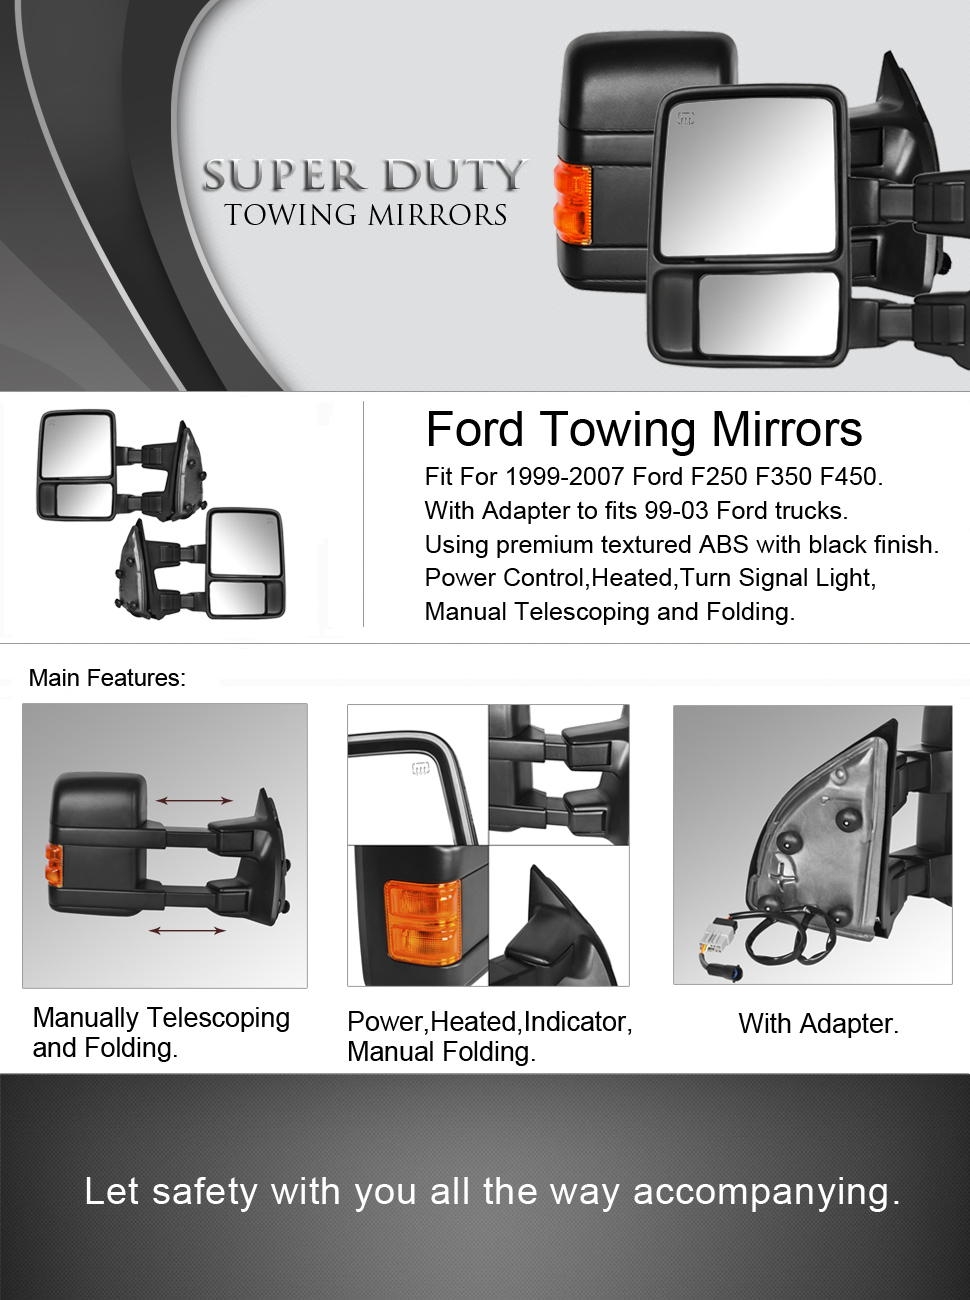 3e4EMyExQyWq._UX970_TTW_ amazon com dedc ford towing mirrors f250 ford tow mirrors f350 Dodge Truck Leather at couponss.co